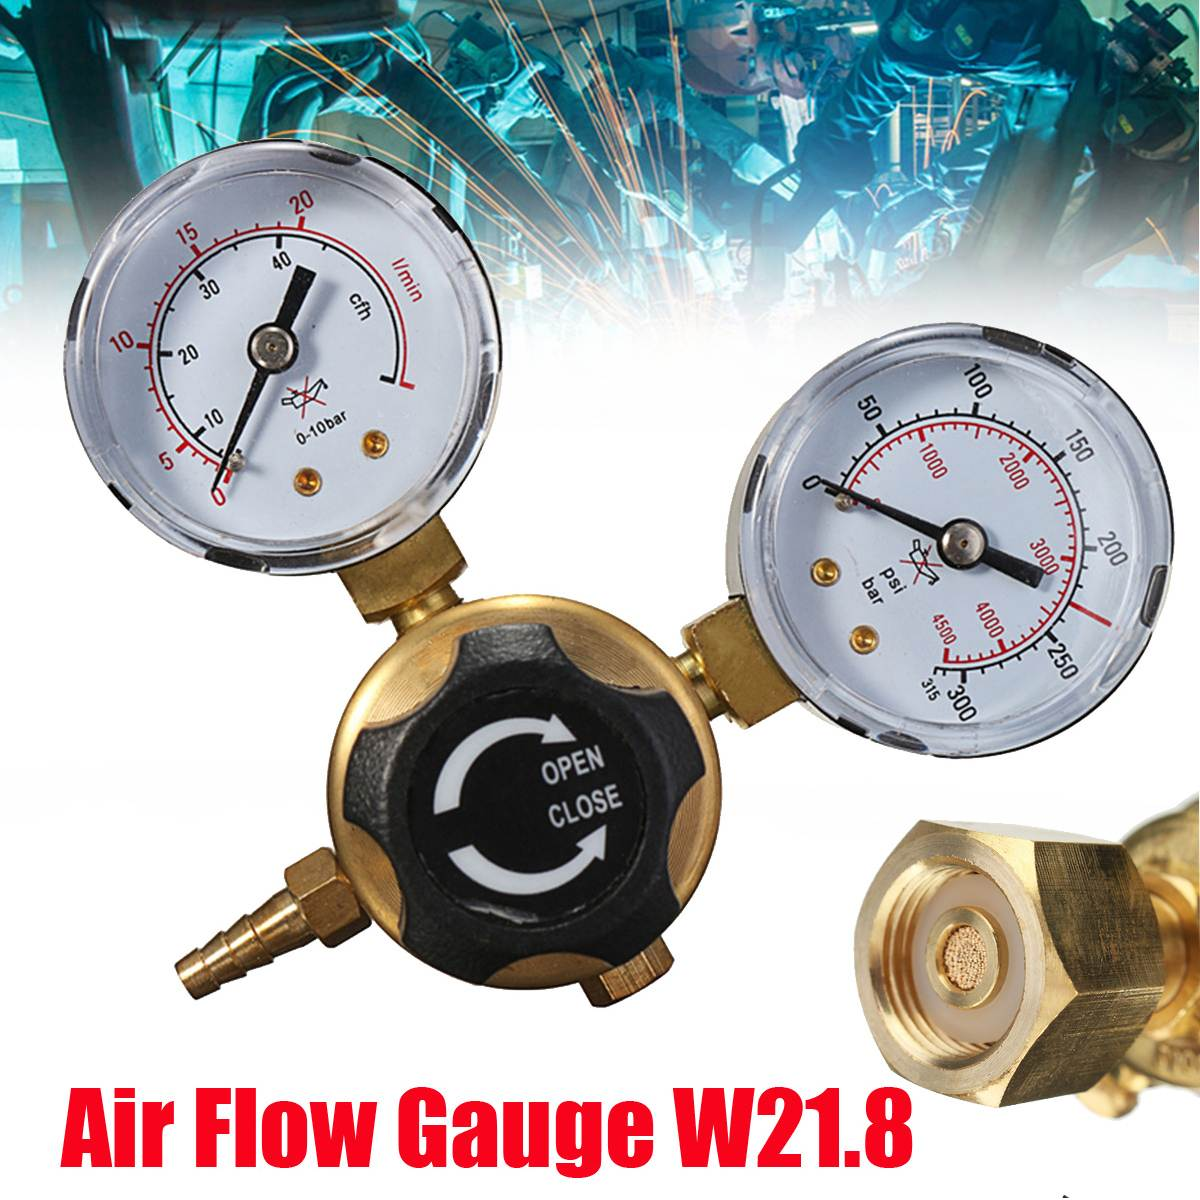 Mini Argon CO2 Gas Bottle Pressure Regulator MIG TIG Welding Flow Meter Gauge W21.8 1/4 Thread 0-20 mpa high quality 1 4pt thread 7mm barb argon gas flow meter welding weld regulator 0 15 mpa